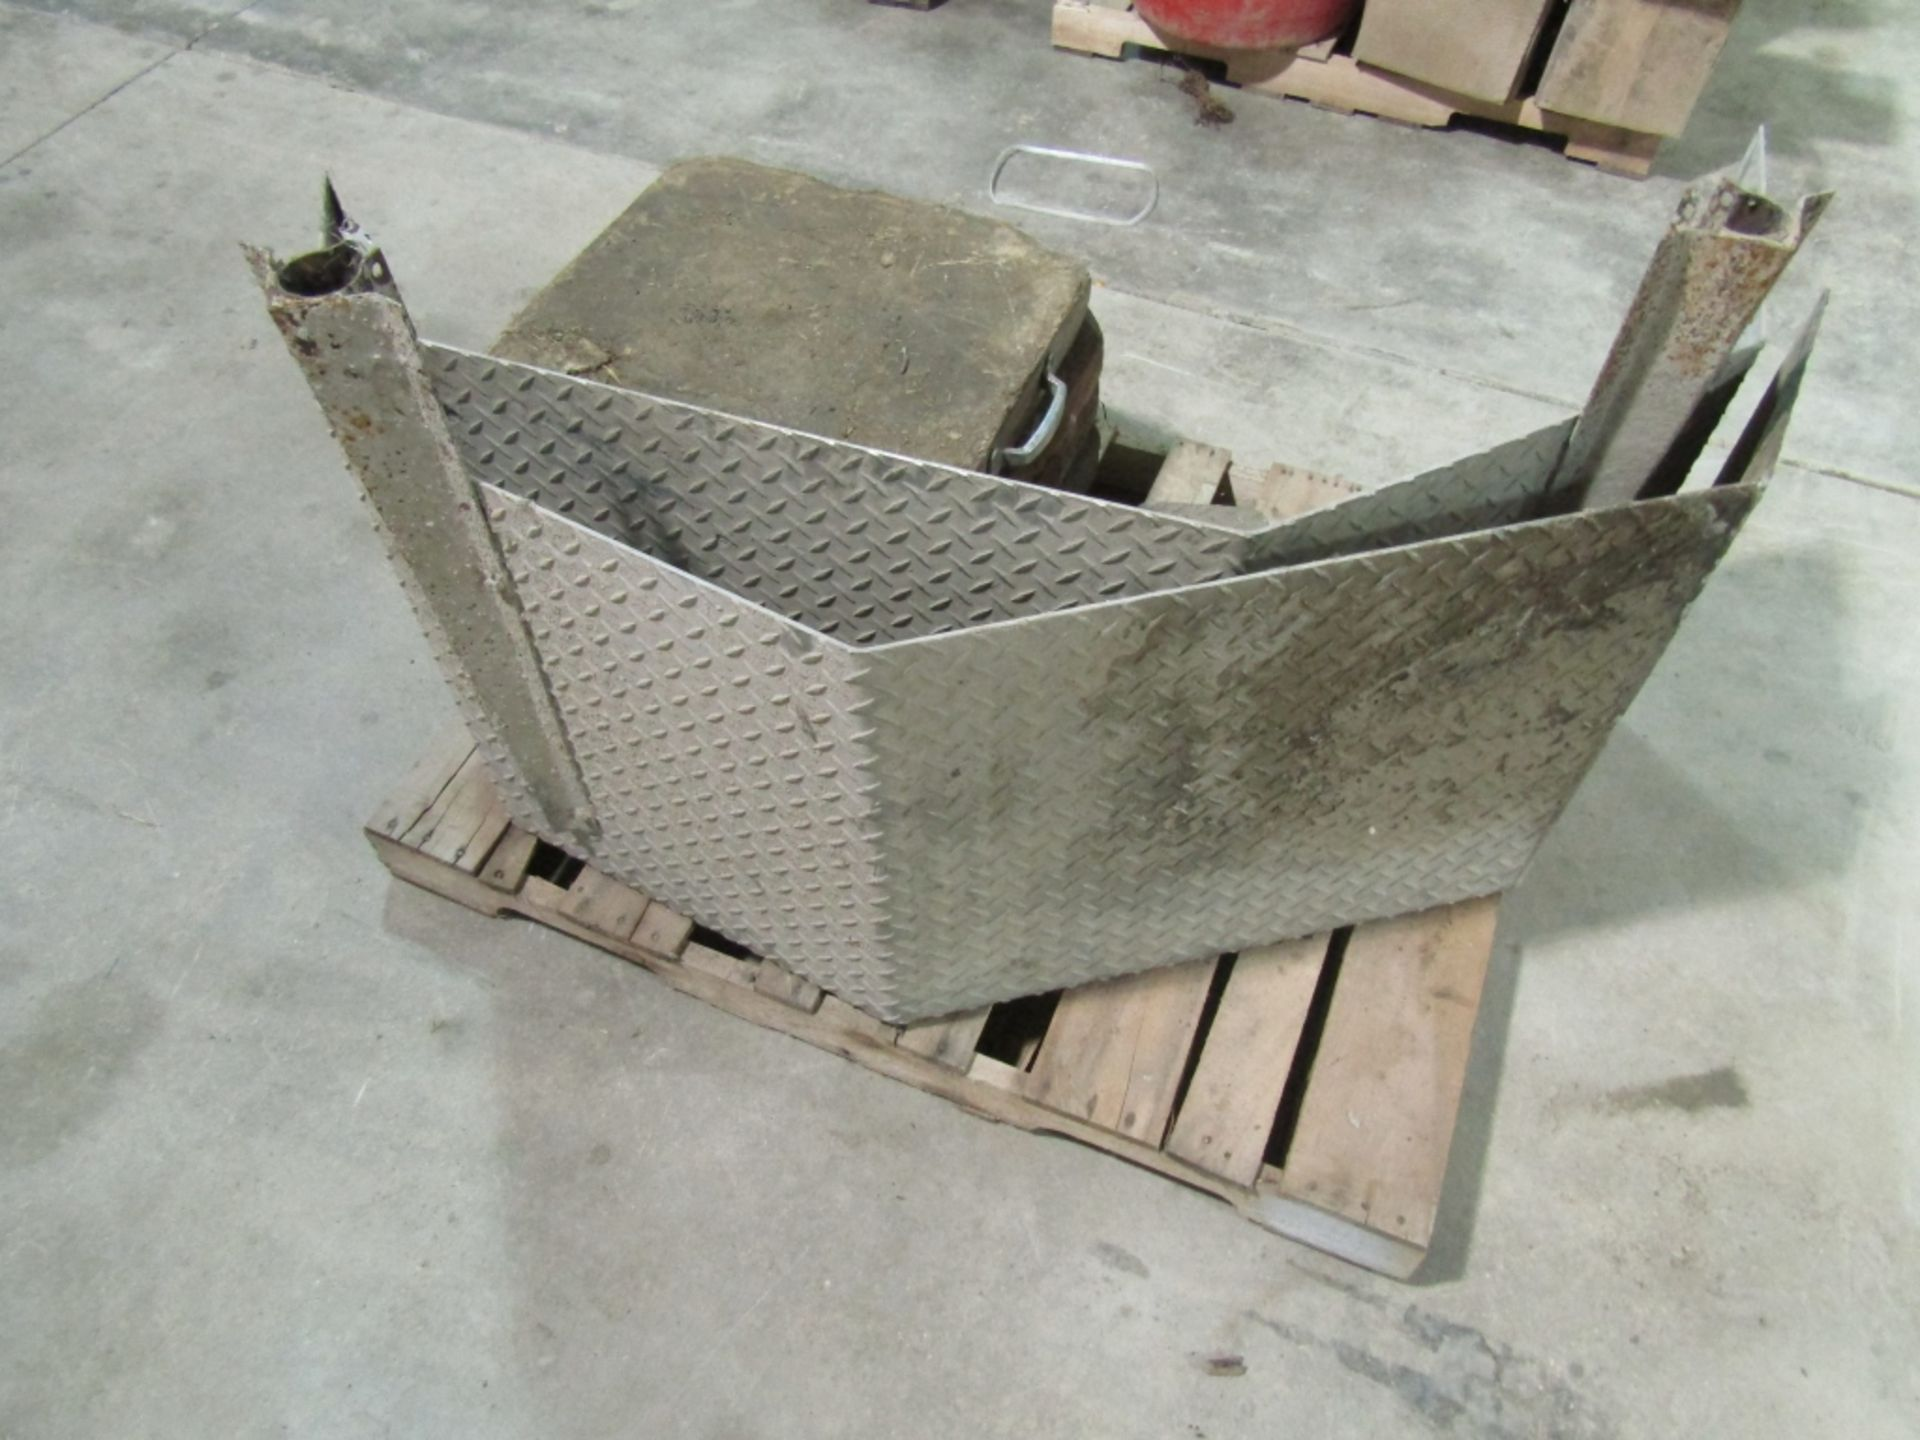 Lot 271 - Pallet of Outrigger Pads & Diamond Plate Fenders, Located in Winterset, IA